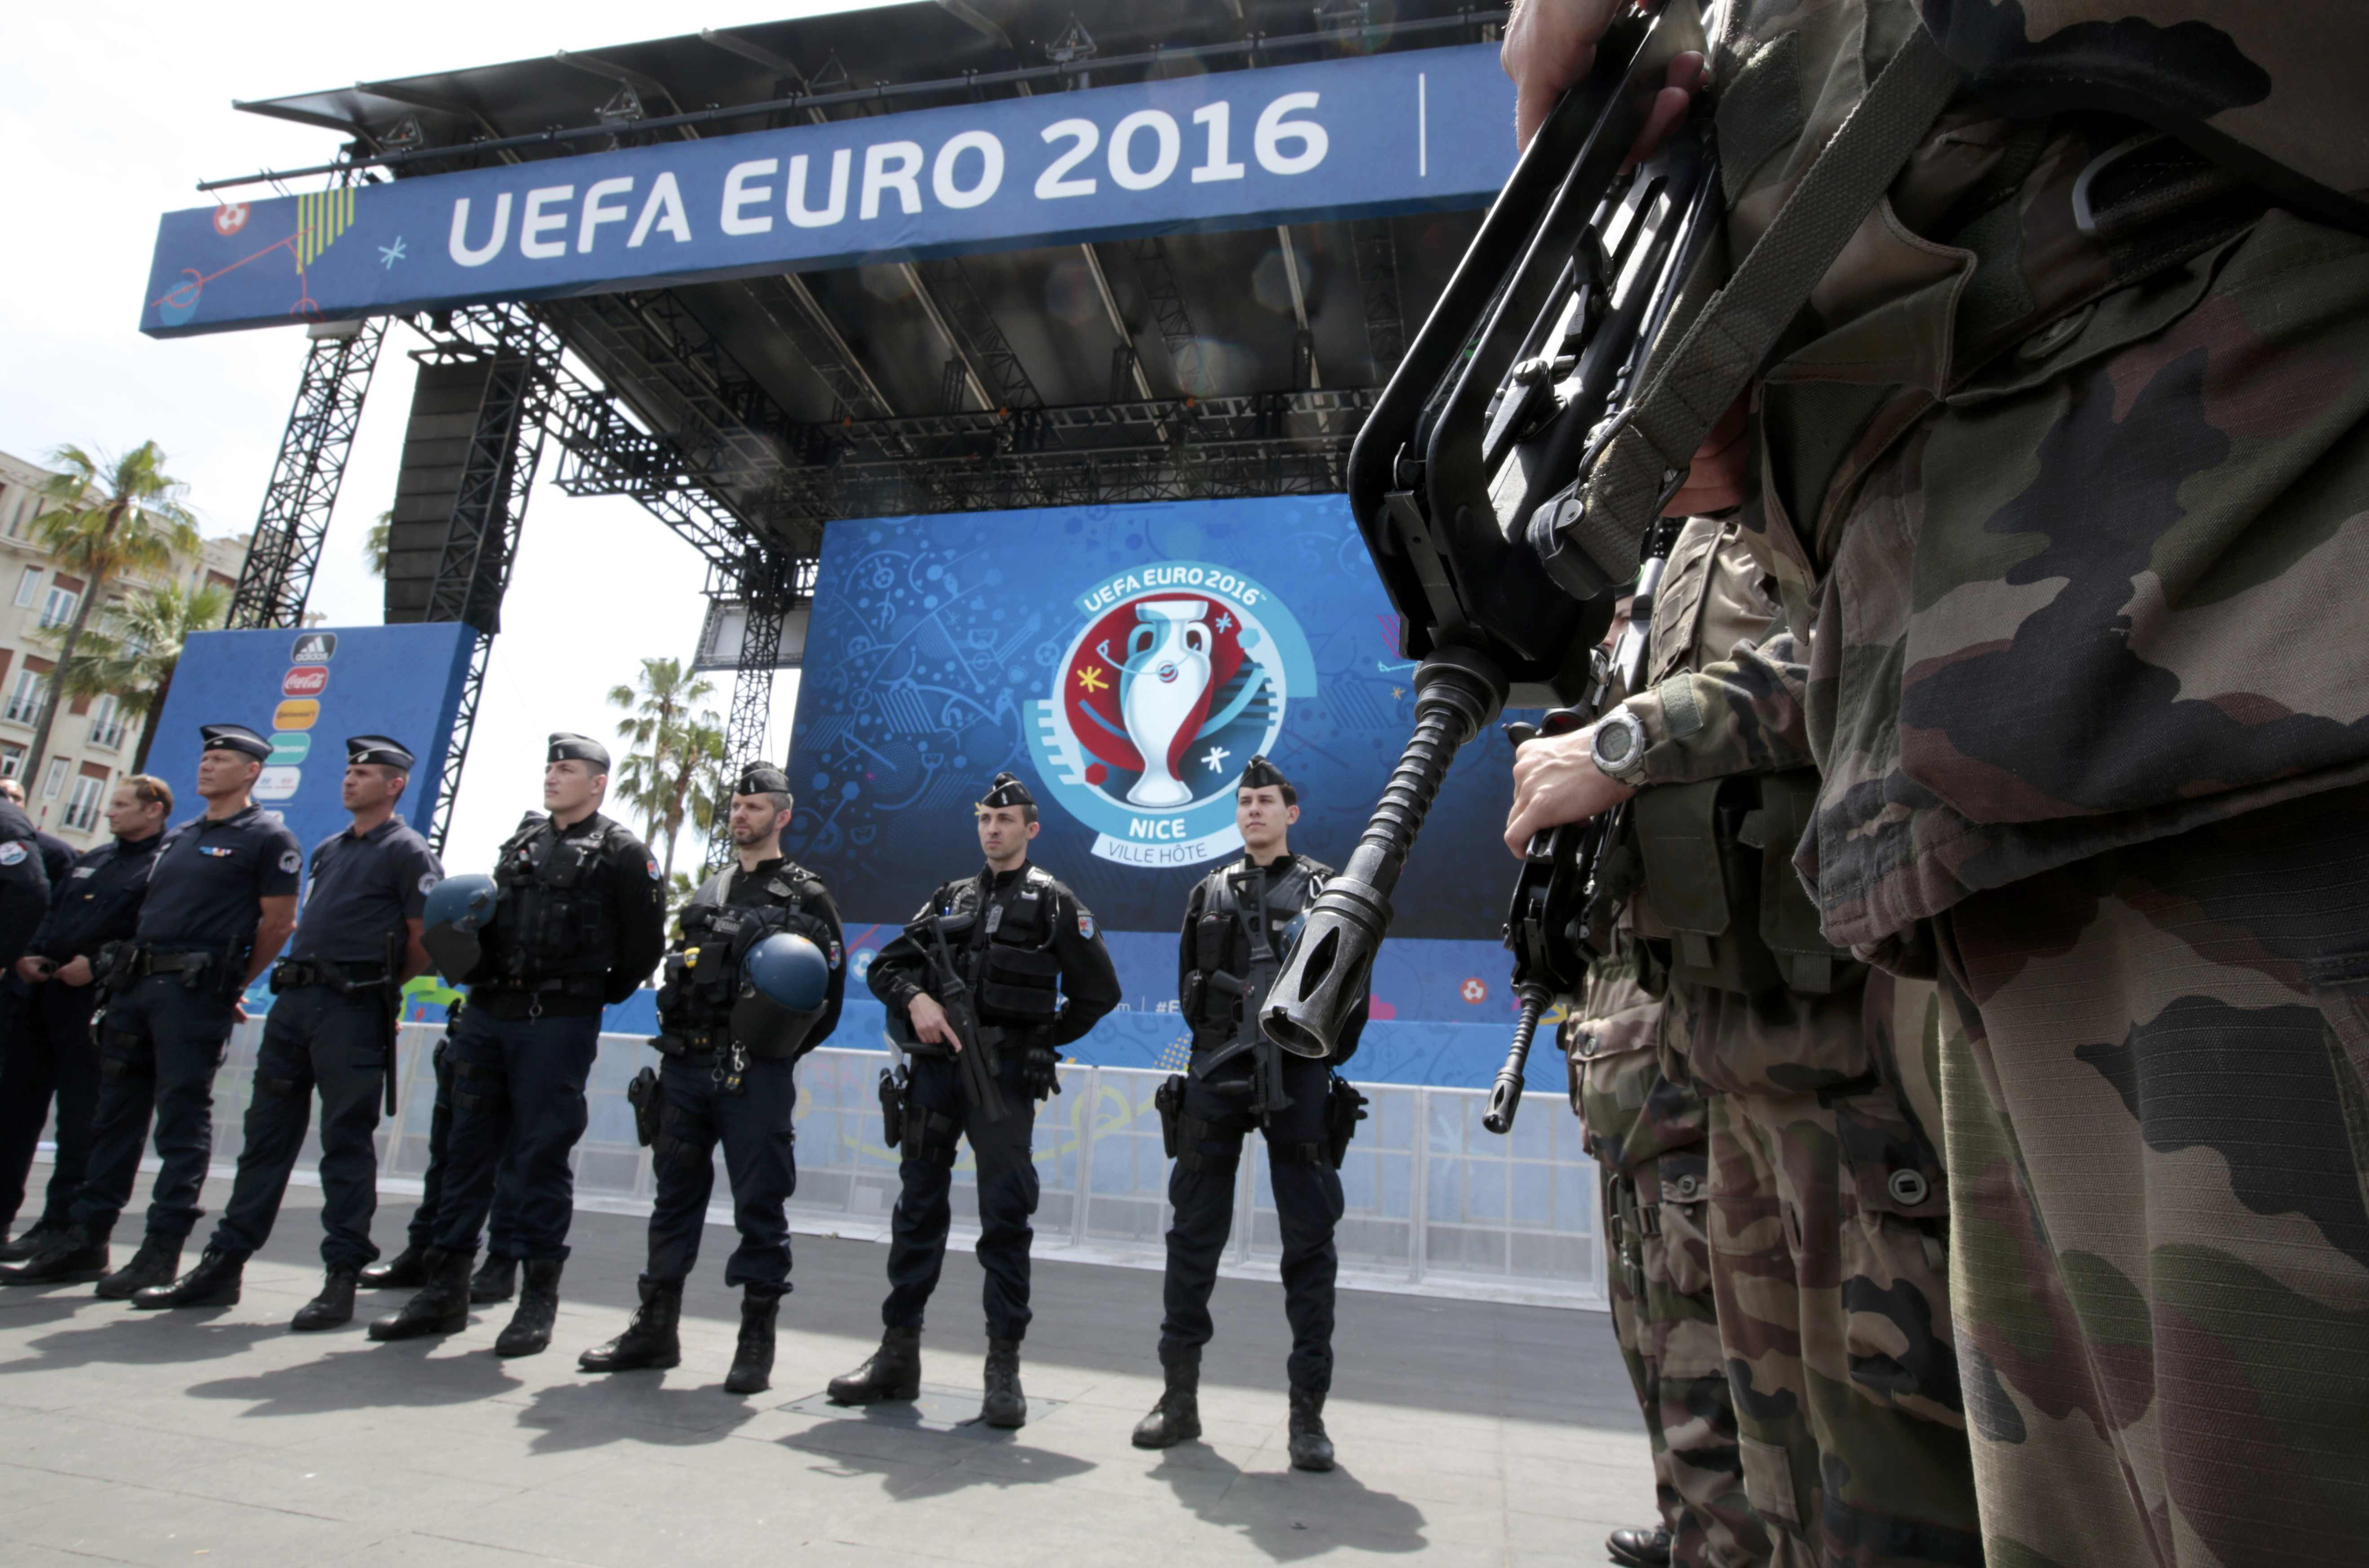 French soldiers, police and gendarmes are seen during a visit at a fanzone ahead of the UEFA 2016 European Championship in Nice, France, June 8, 2016. REUTERS/Eric Gaillard